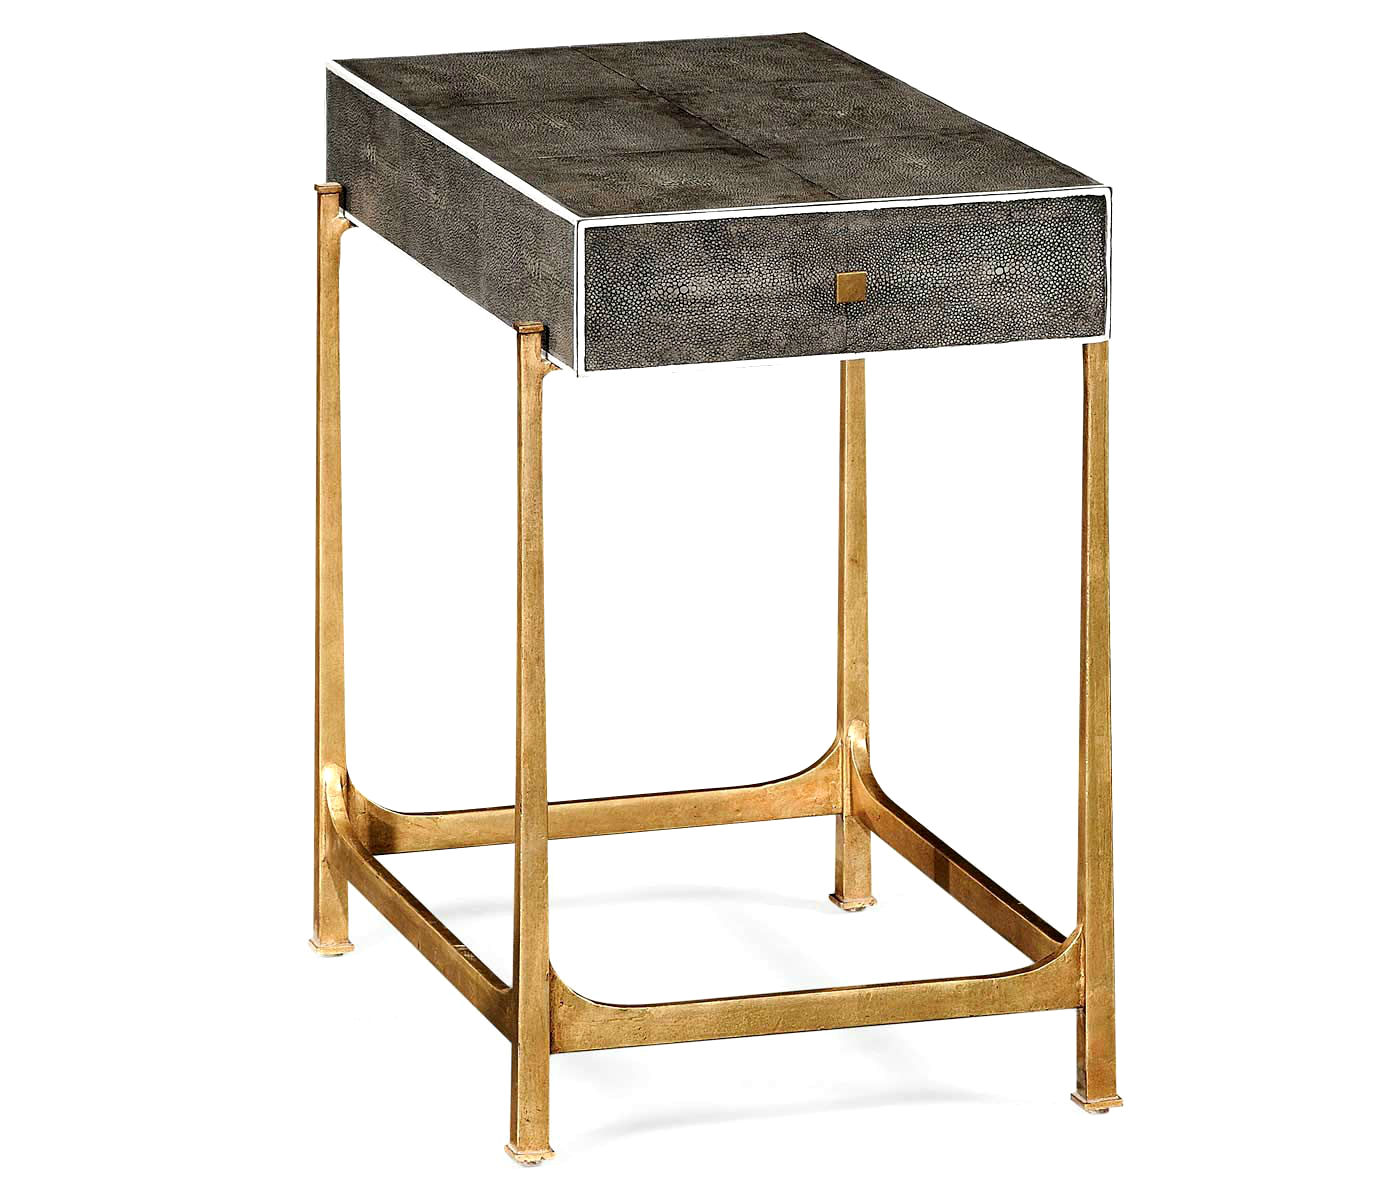 shagreen side table end accent tables lighting seattle tall art deco iron black gold gilded partner coffee console available hospitality residential uma enterprises lamps living